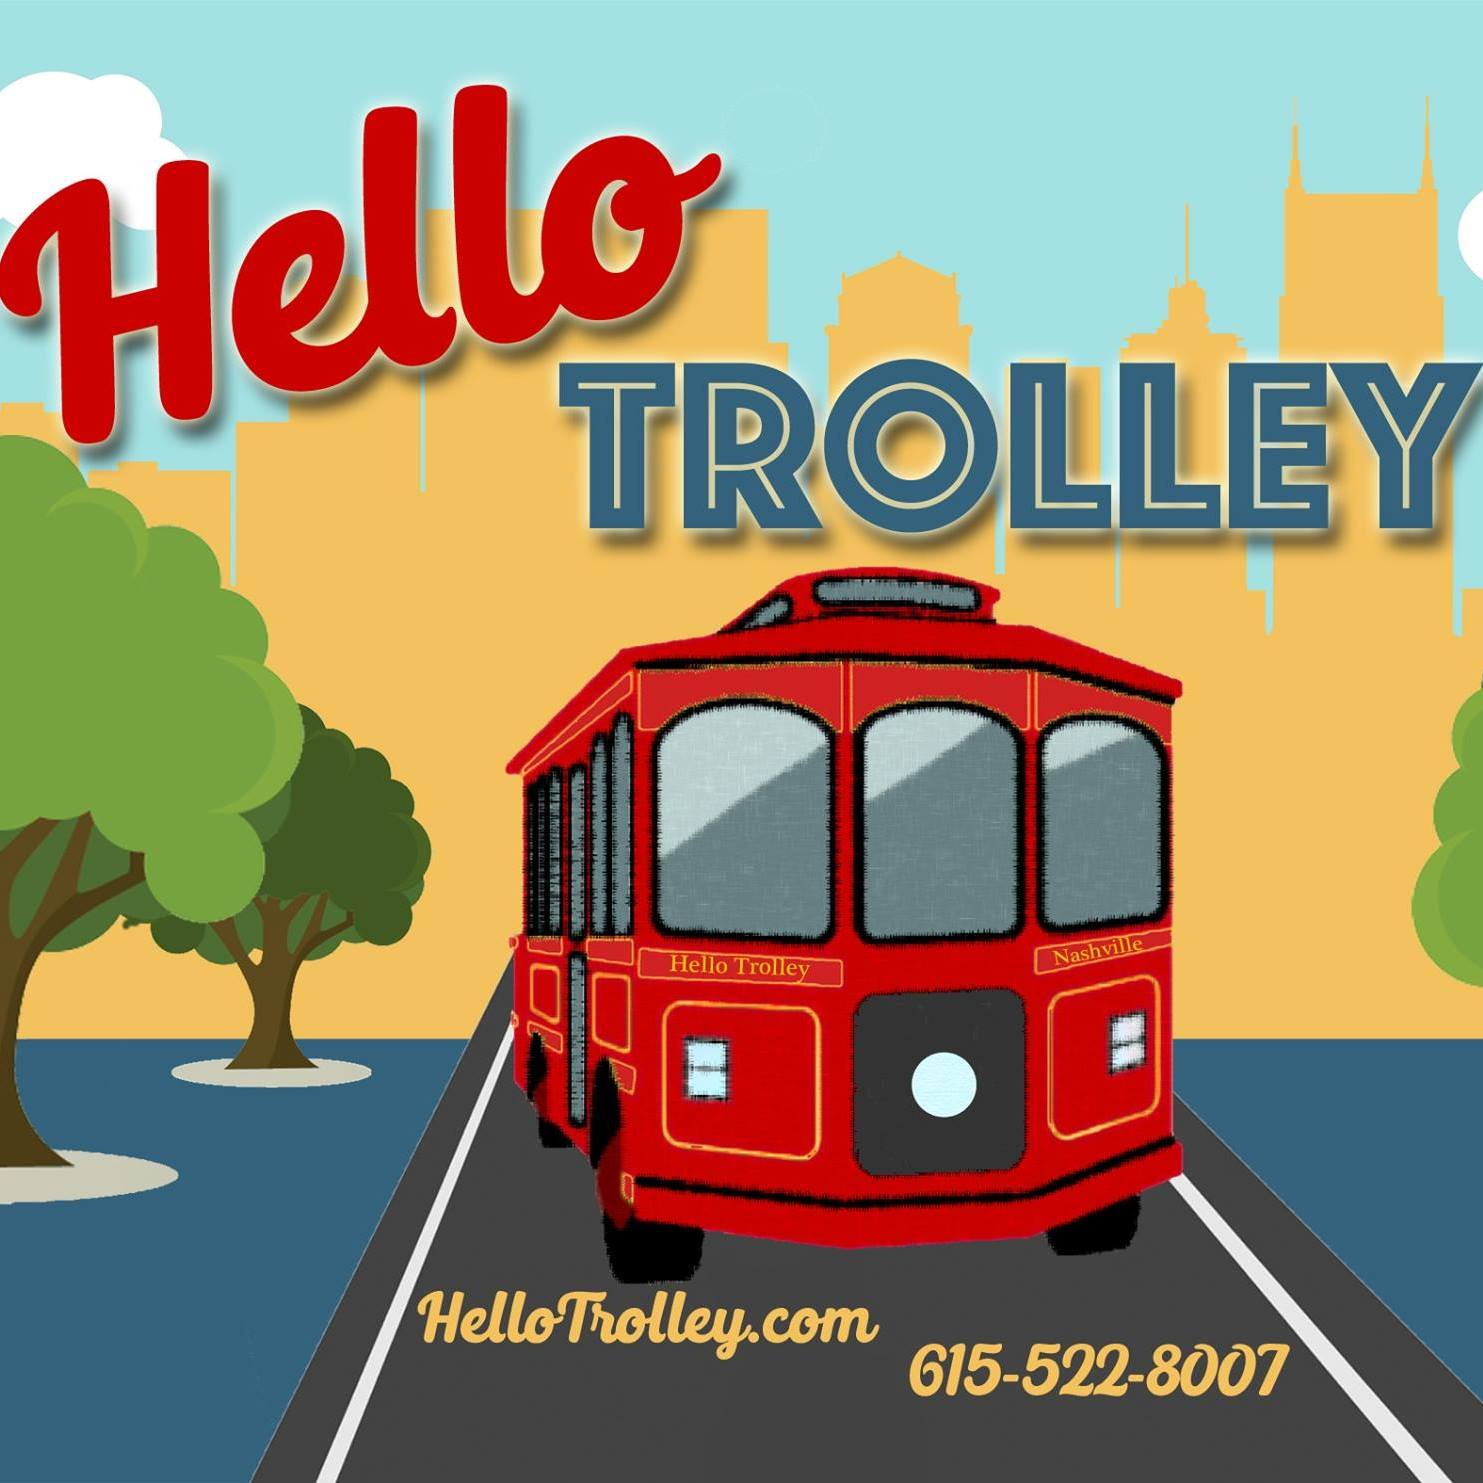 Hello Trolley